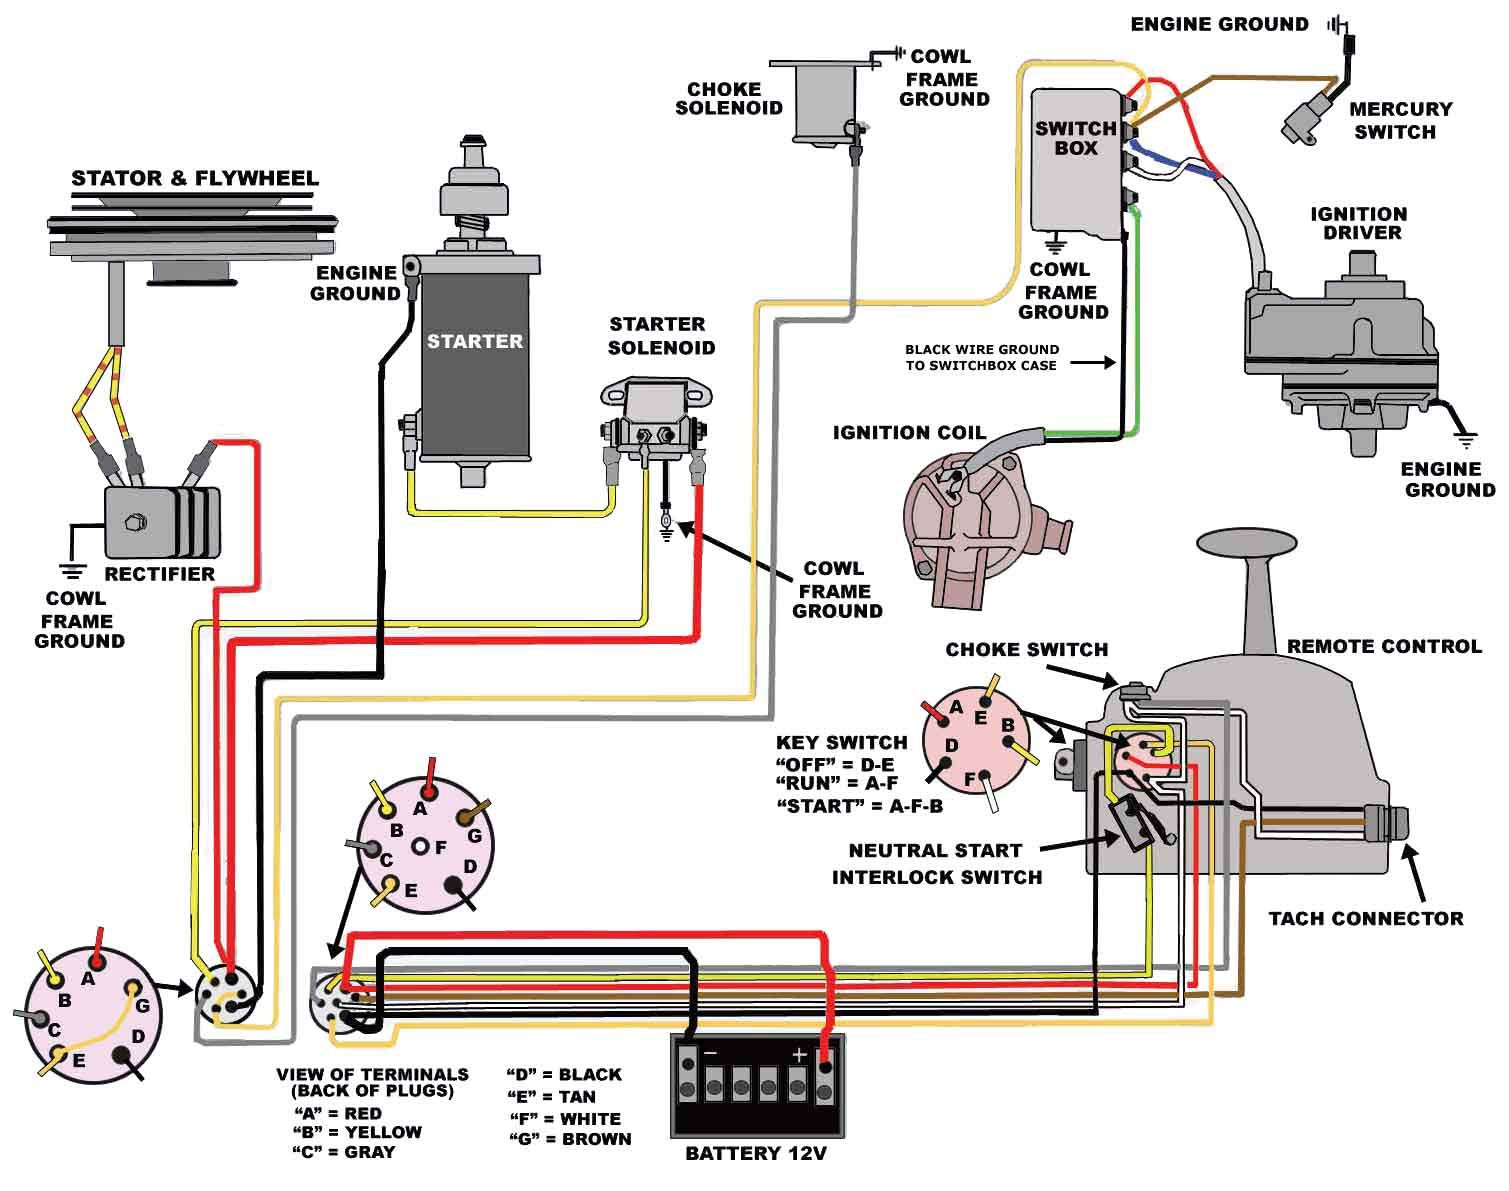 remote starter switch wiring diagrams 23 automatic engine wiring harness diagram technique  with images  automatic engine wiring harness diagram